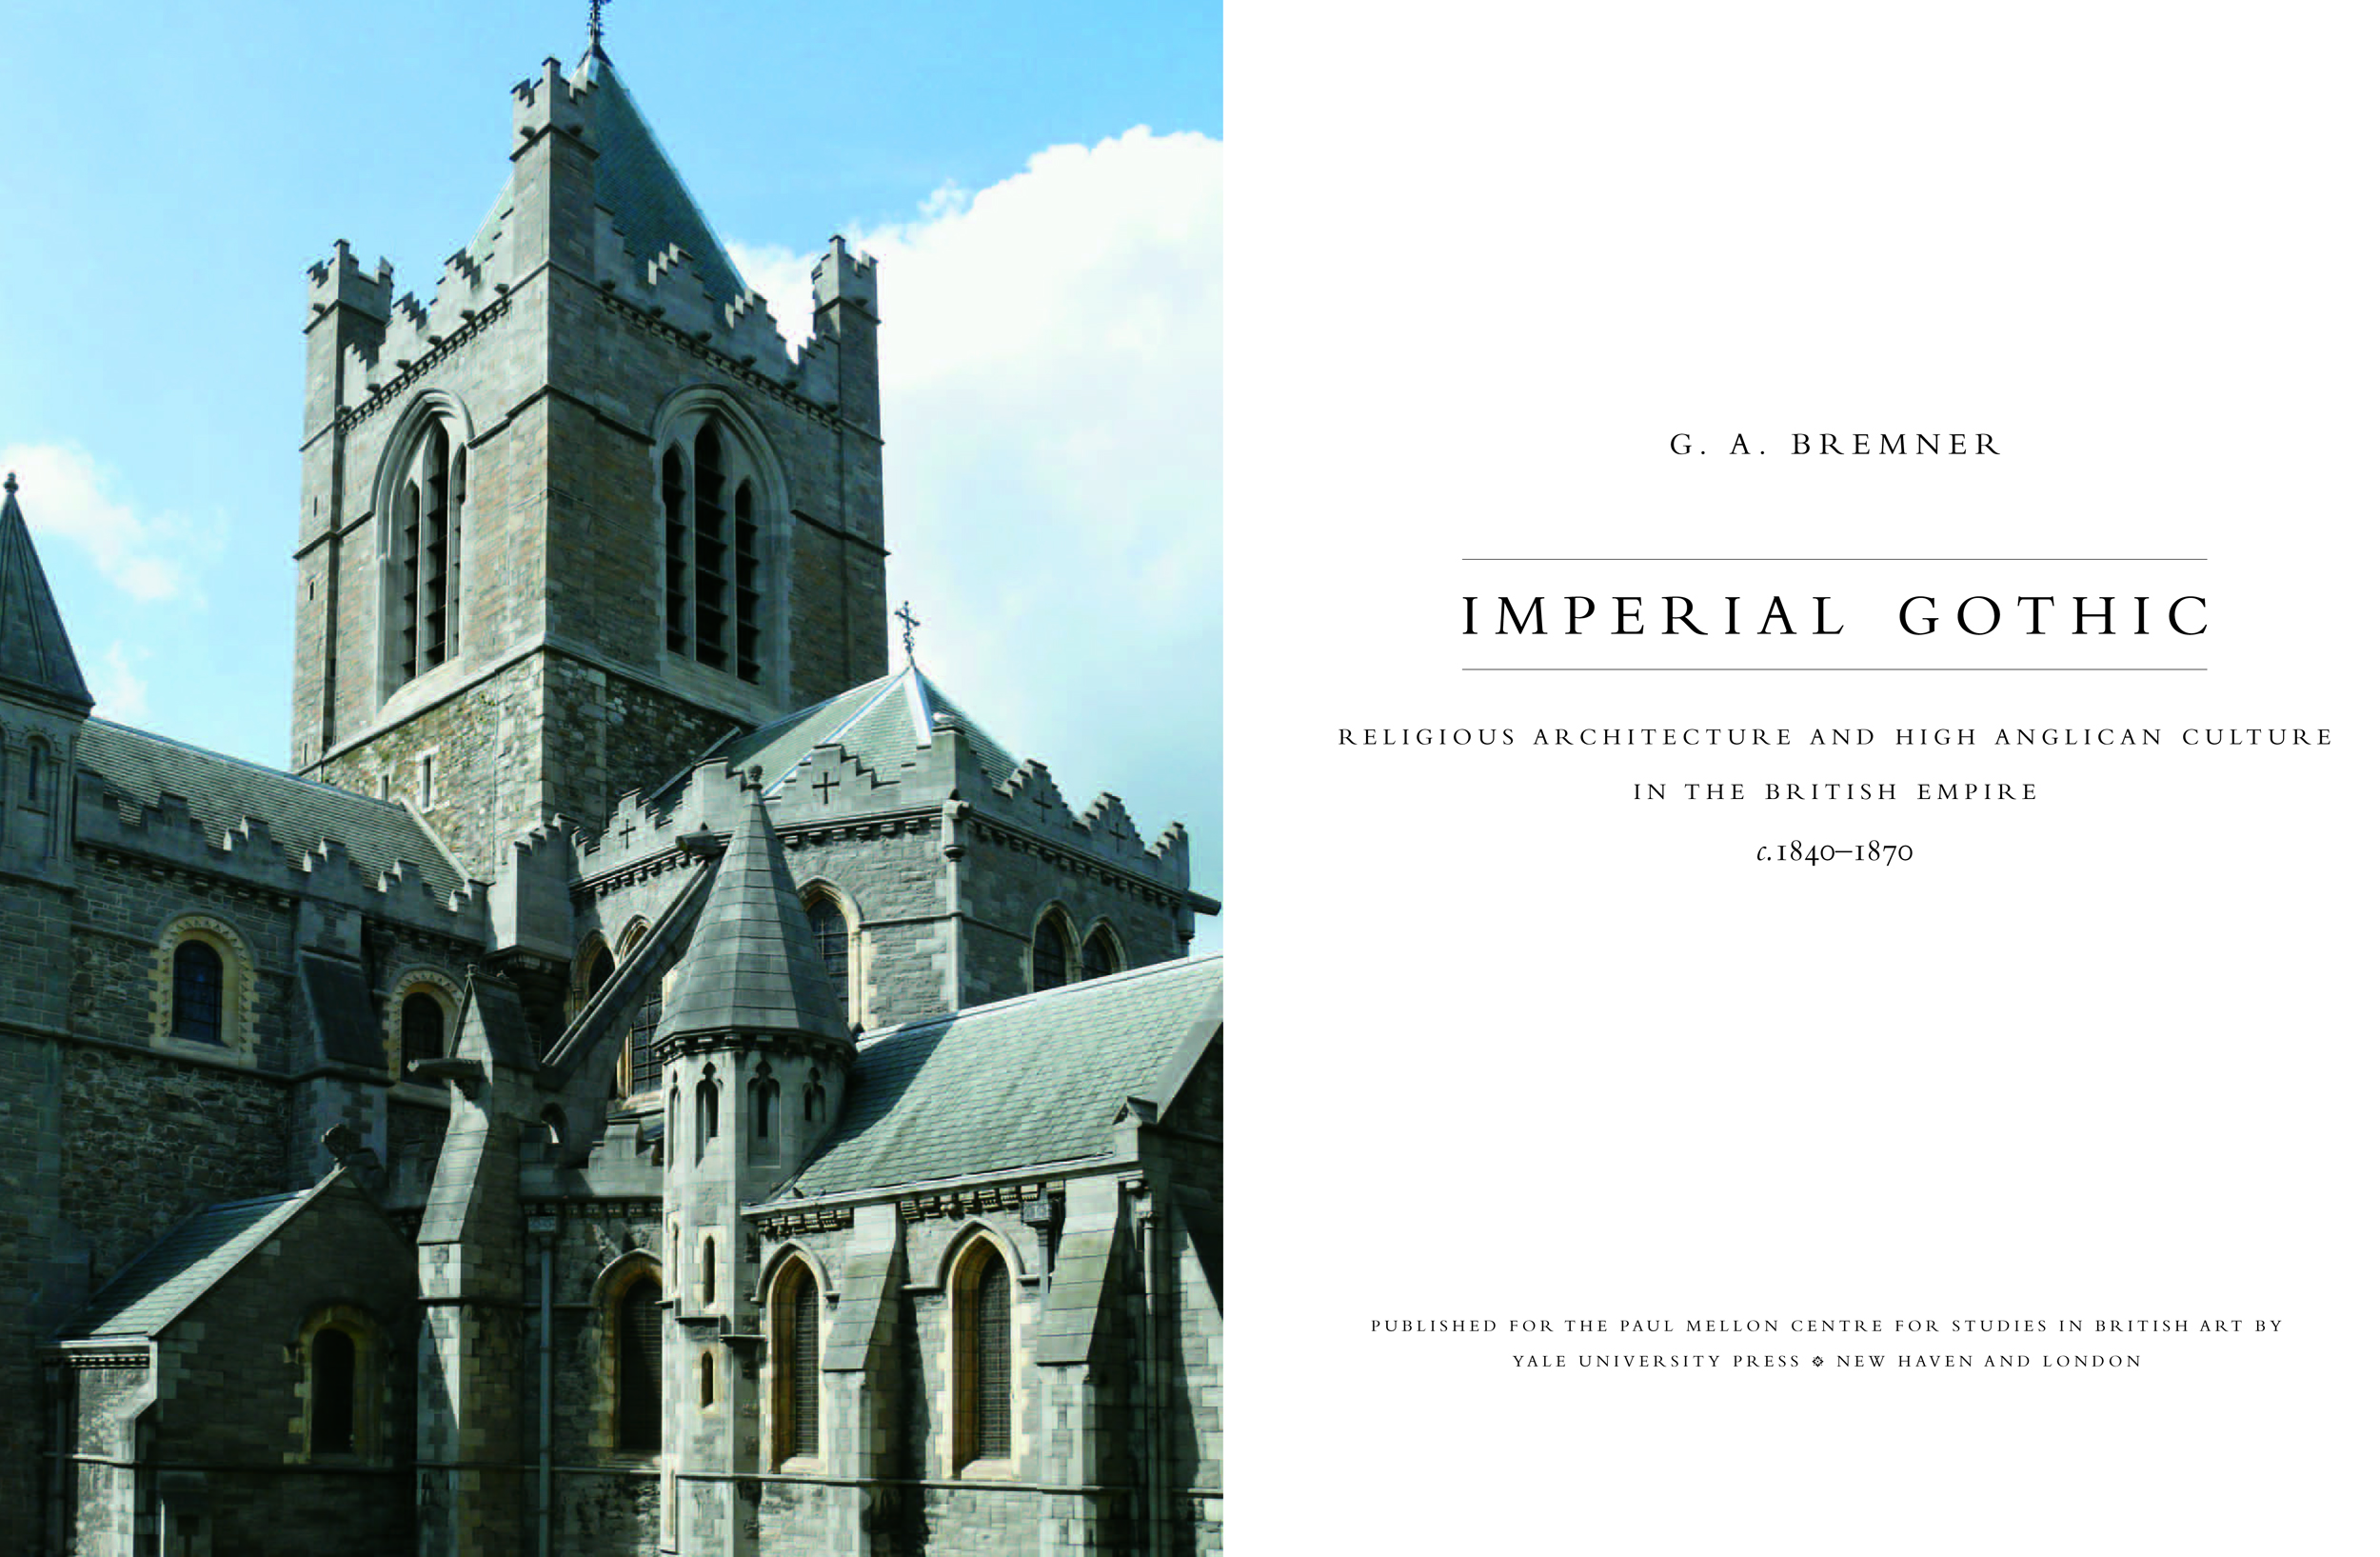 Imperial Gothic: Religious Architecture and High Anglican